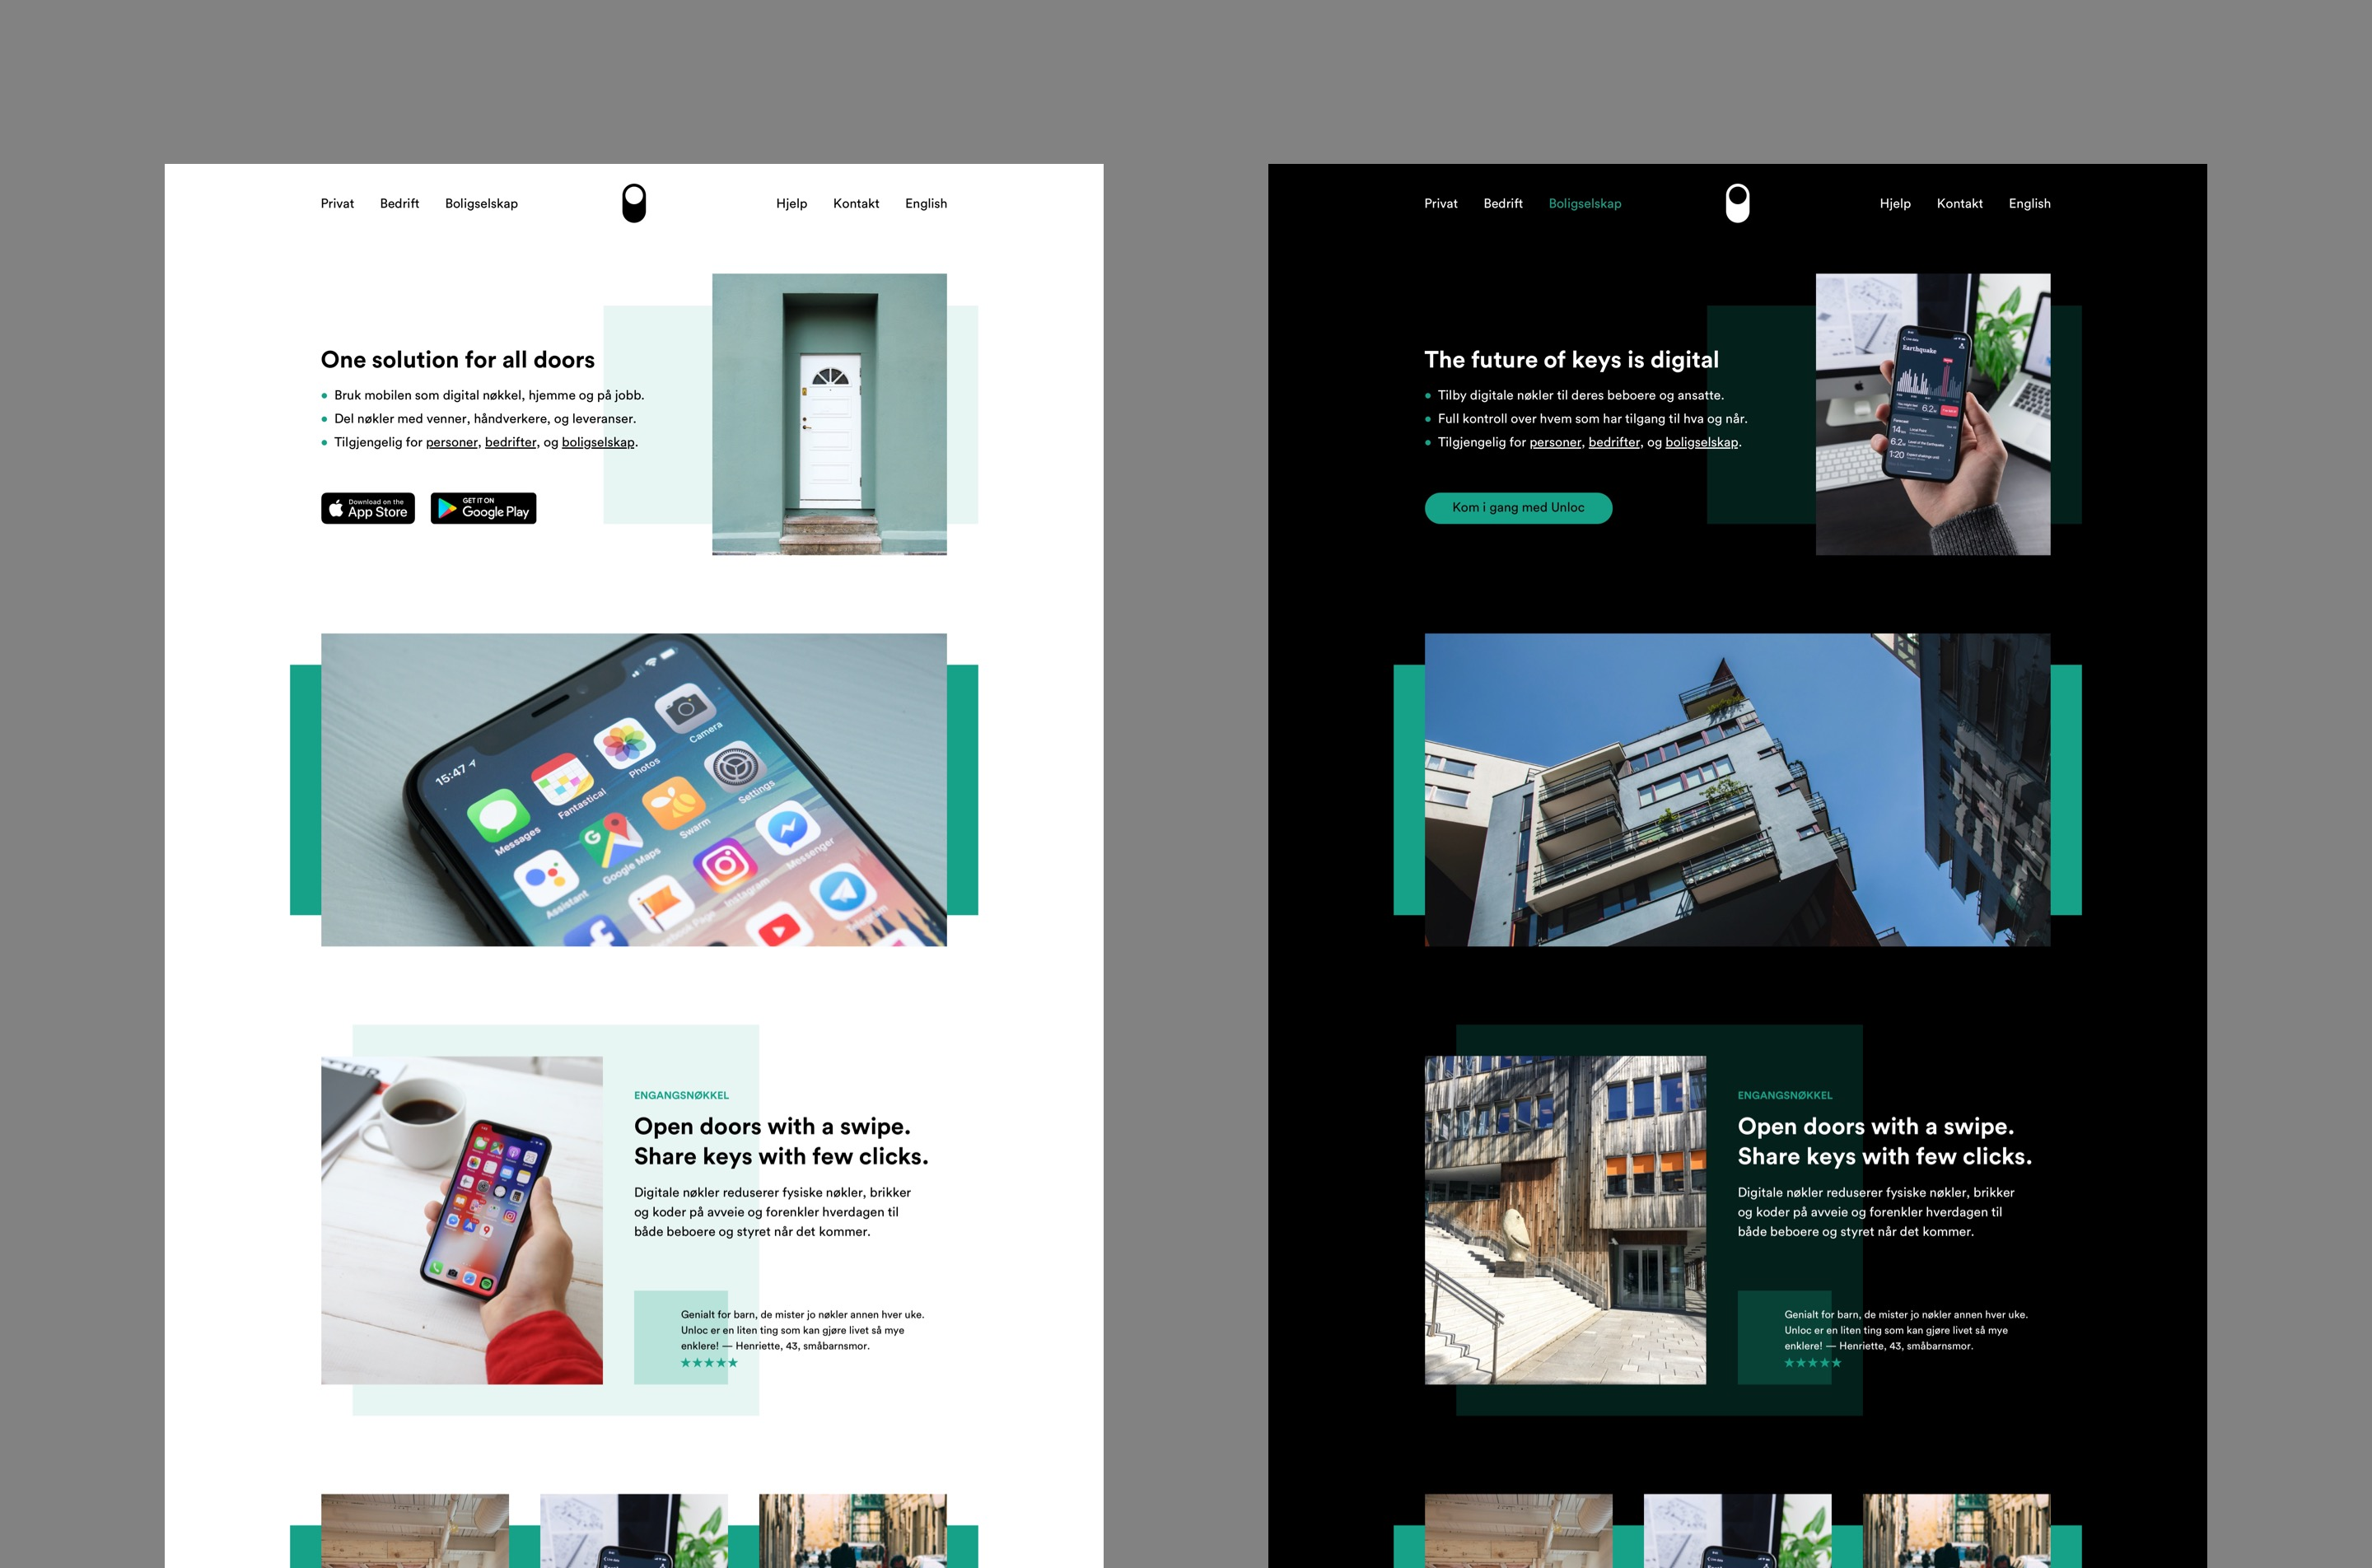 Landing page variants in light and dark modes